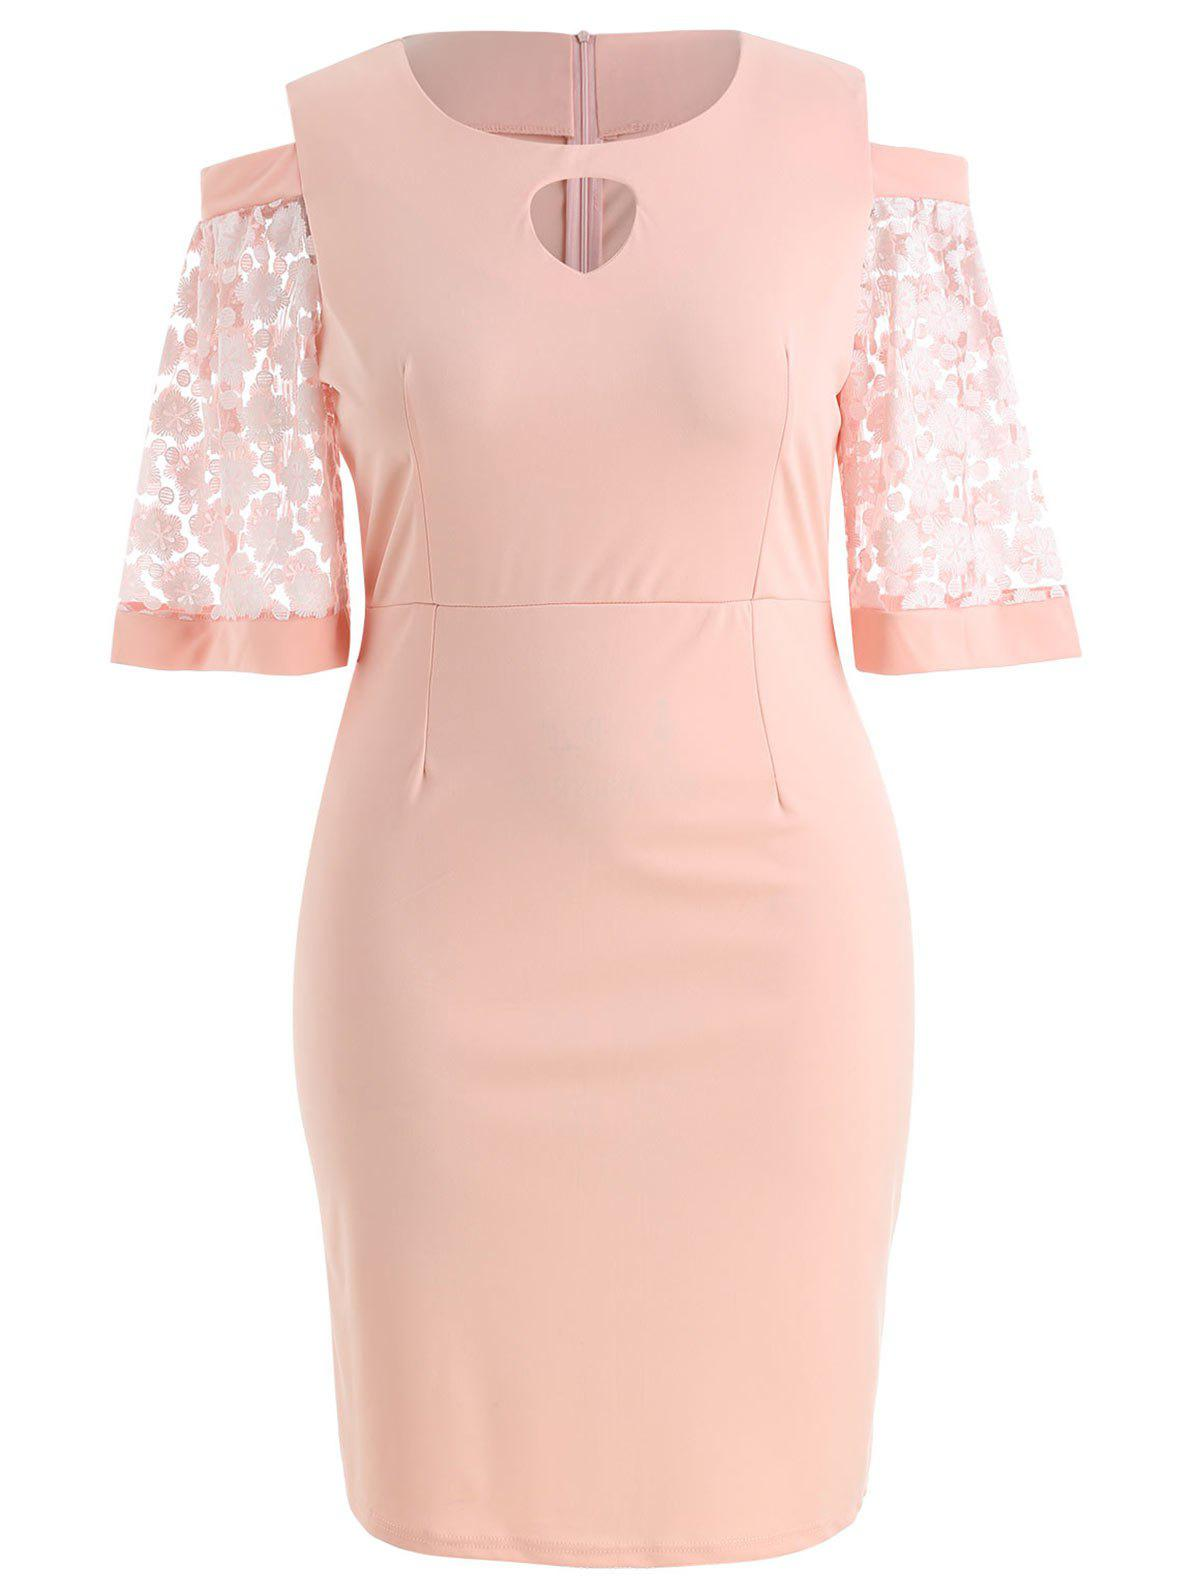 New Plus Size Cut Out Bodycon Dress